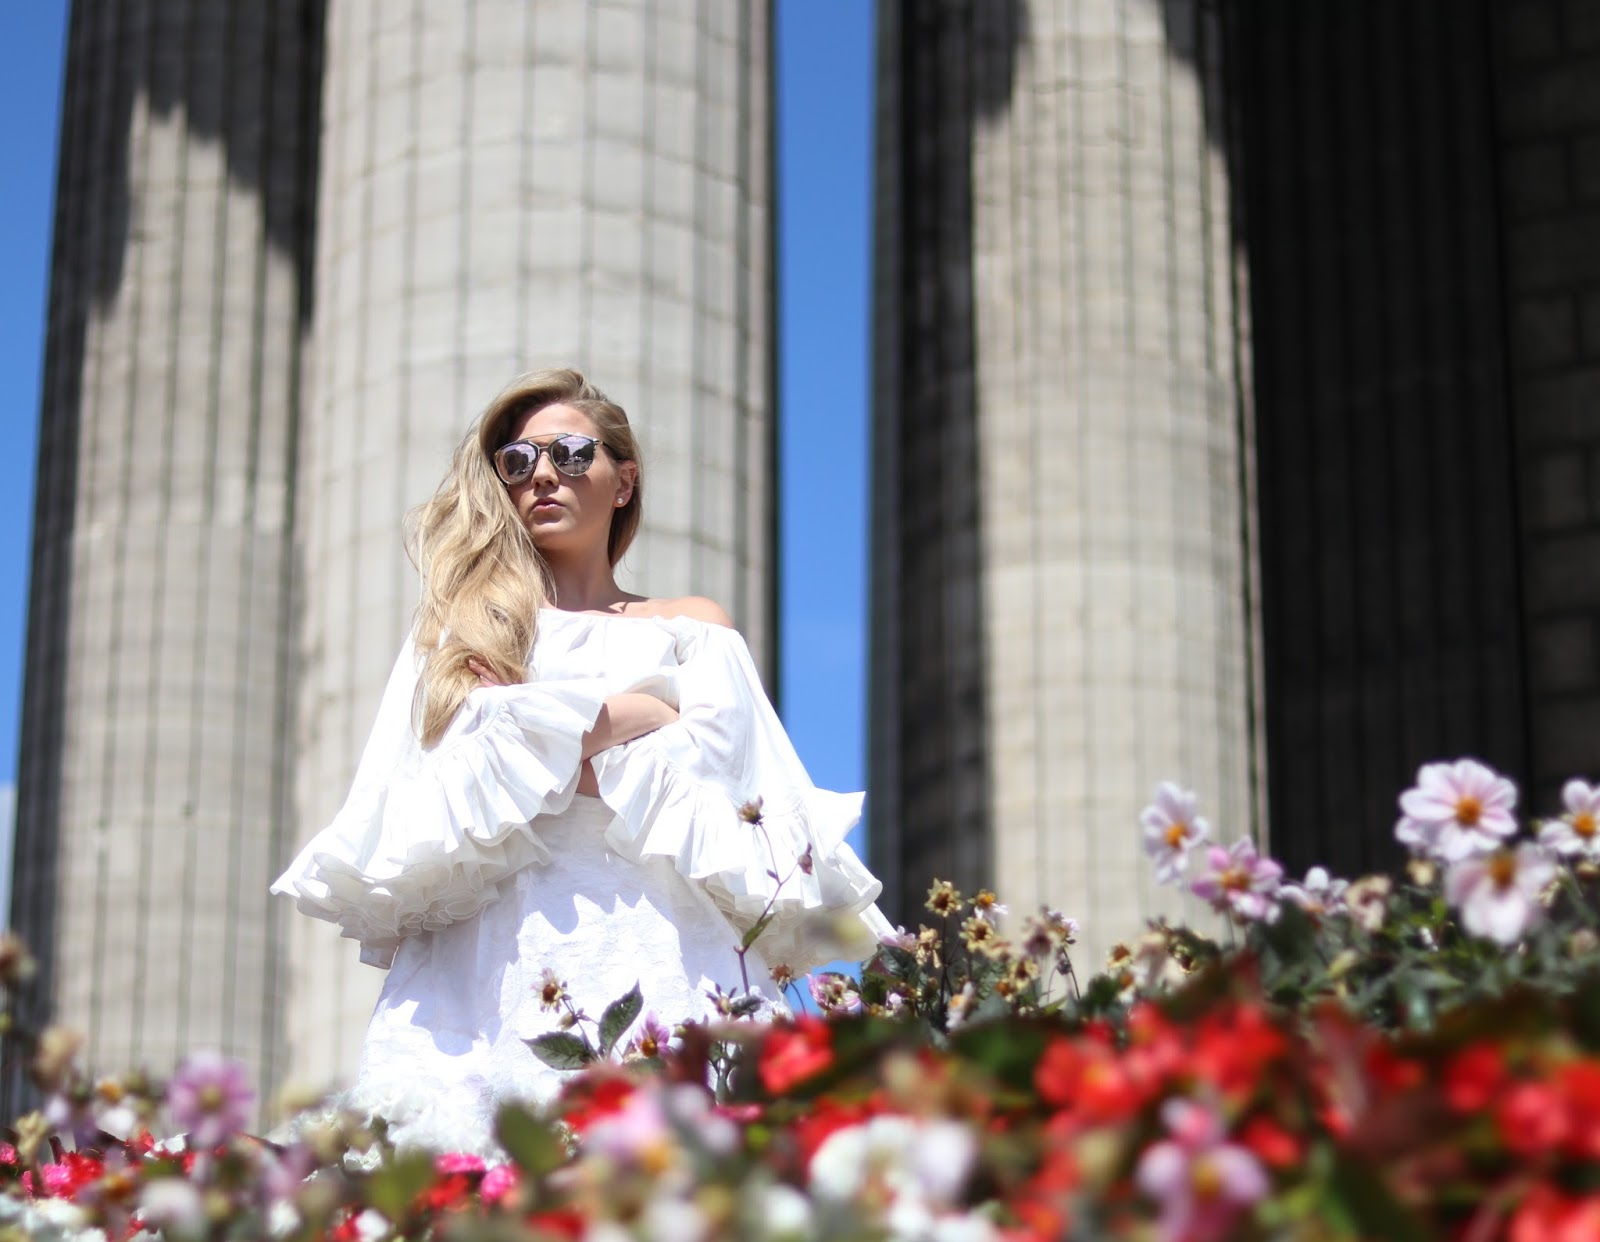 Blonde Girl, Katie Heath wearing all white in front of Pillars, Paris, France